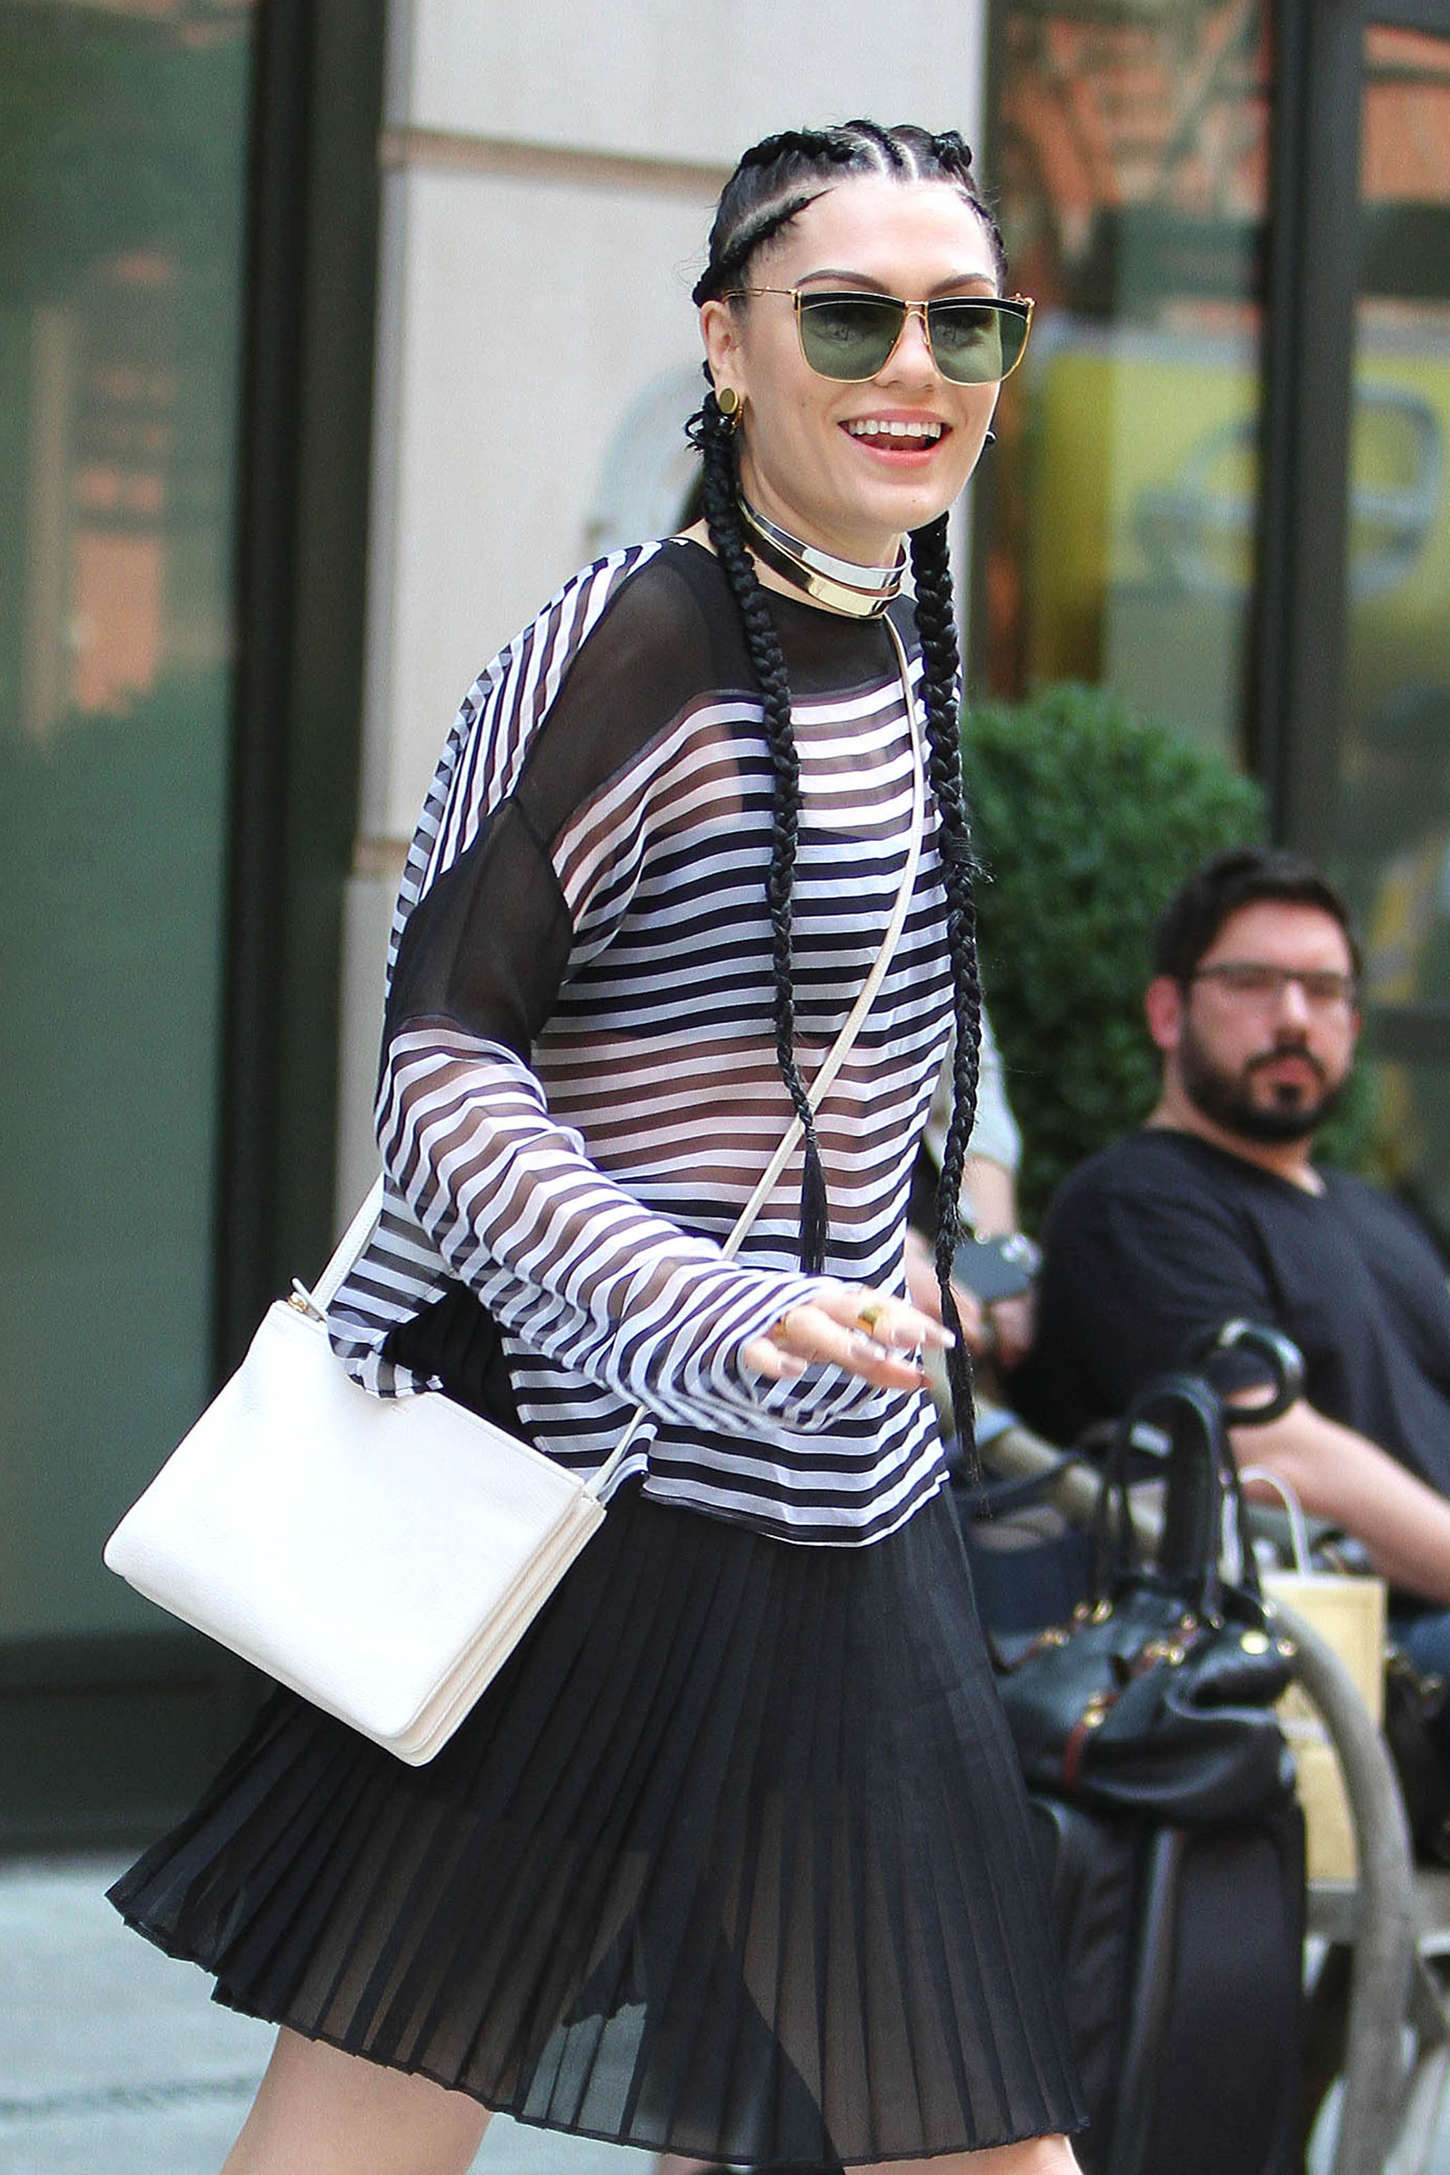 Jessie J in Black Skirt Out in NYC